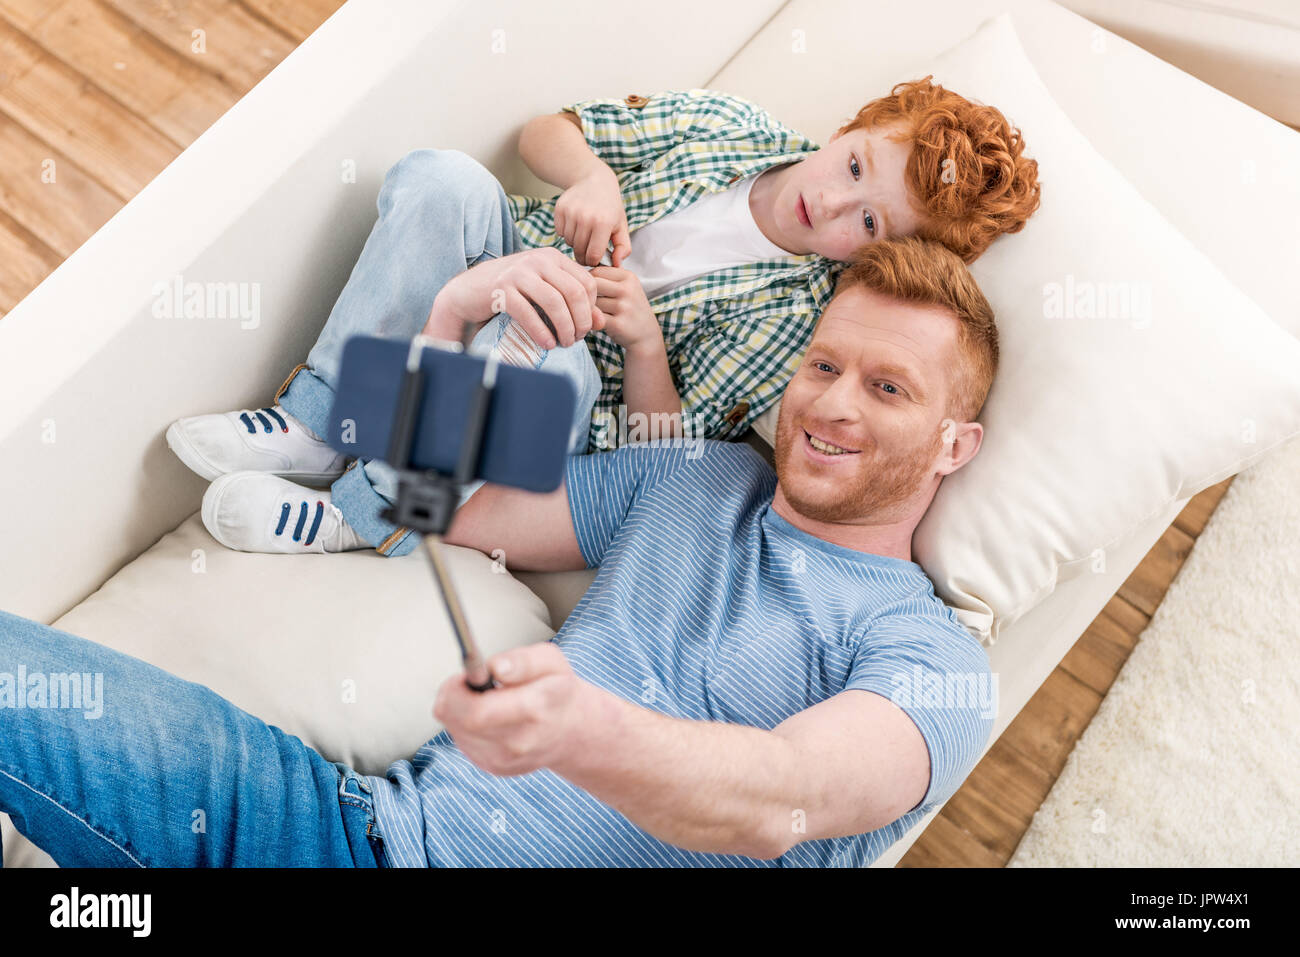 Smiling father and son lying on sofa and taking selfie with smartphone, family fun at home concept - Stock Image